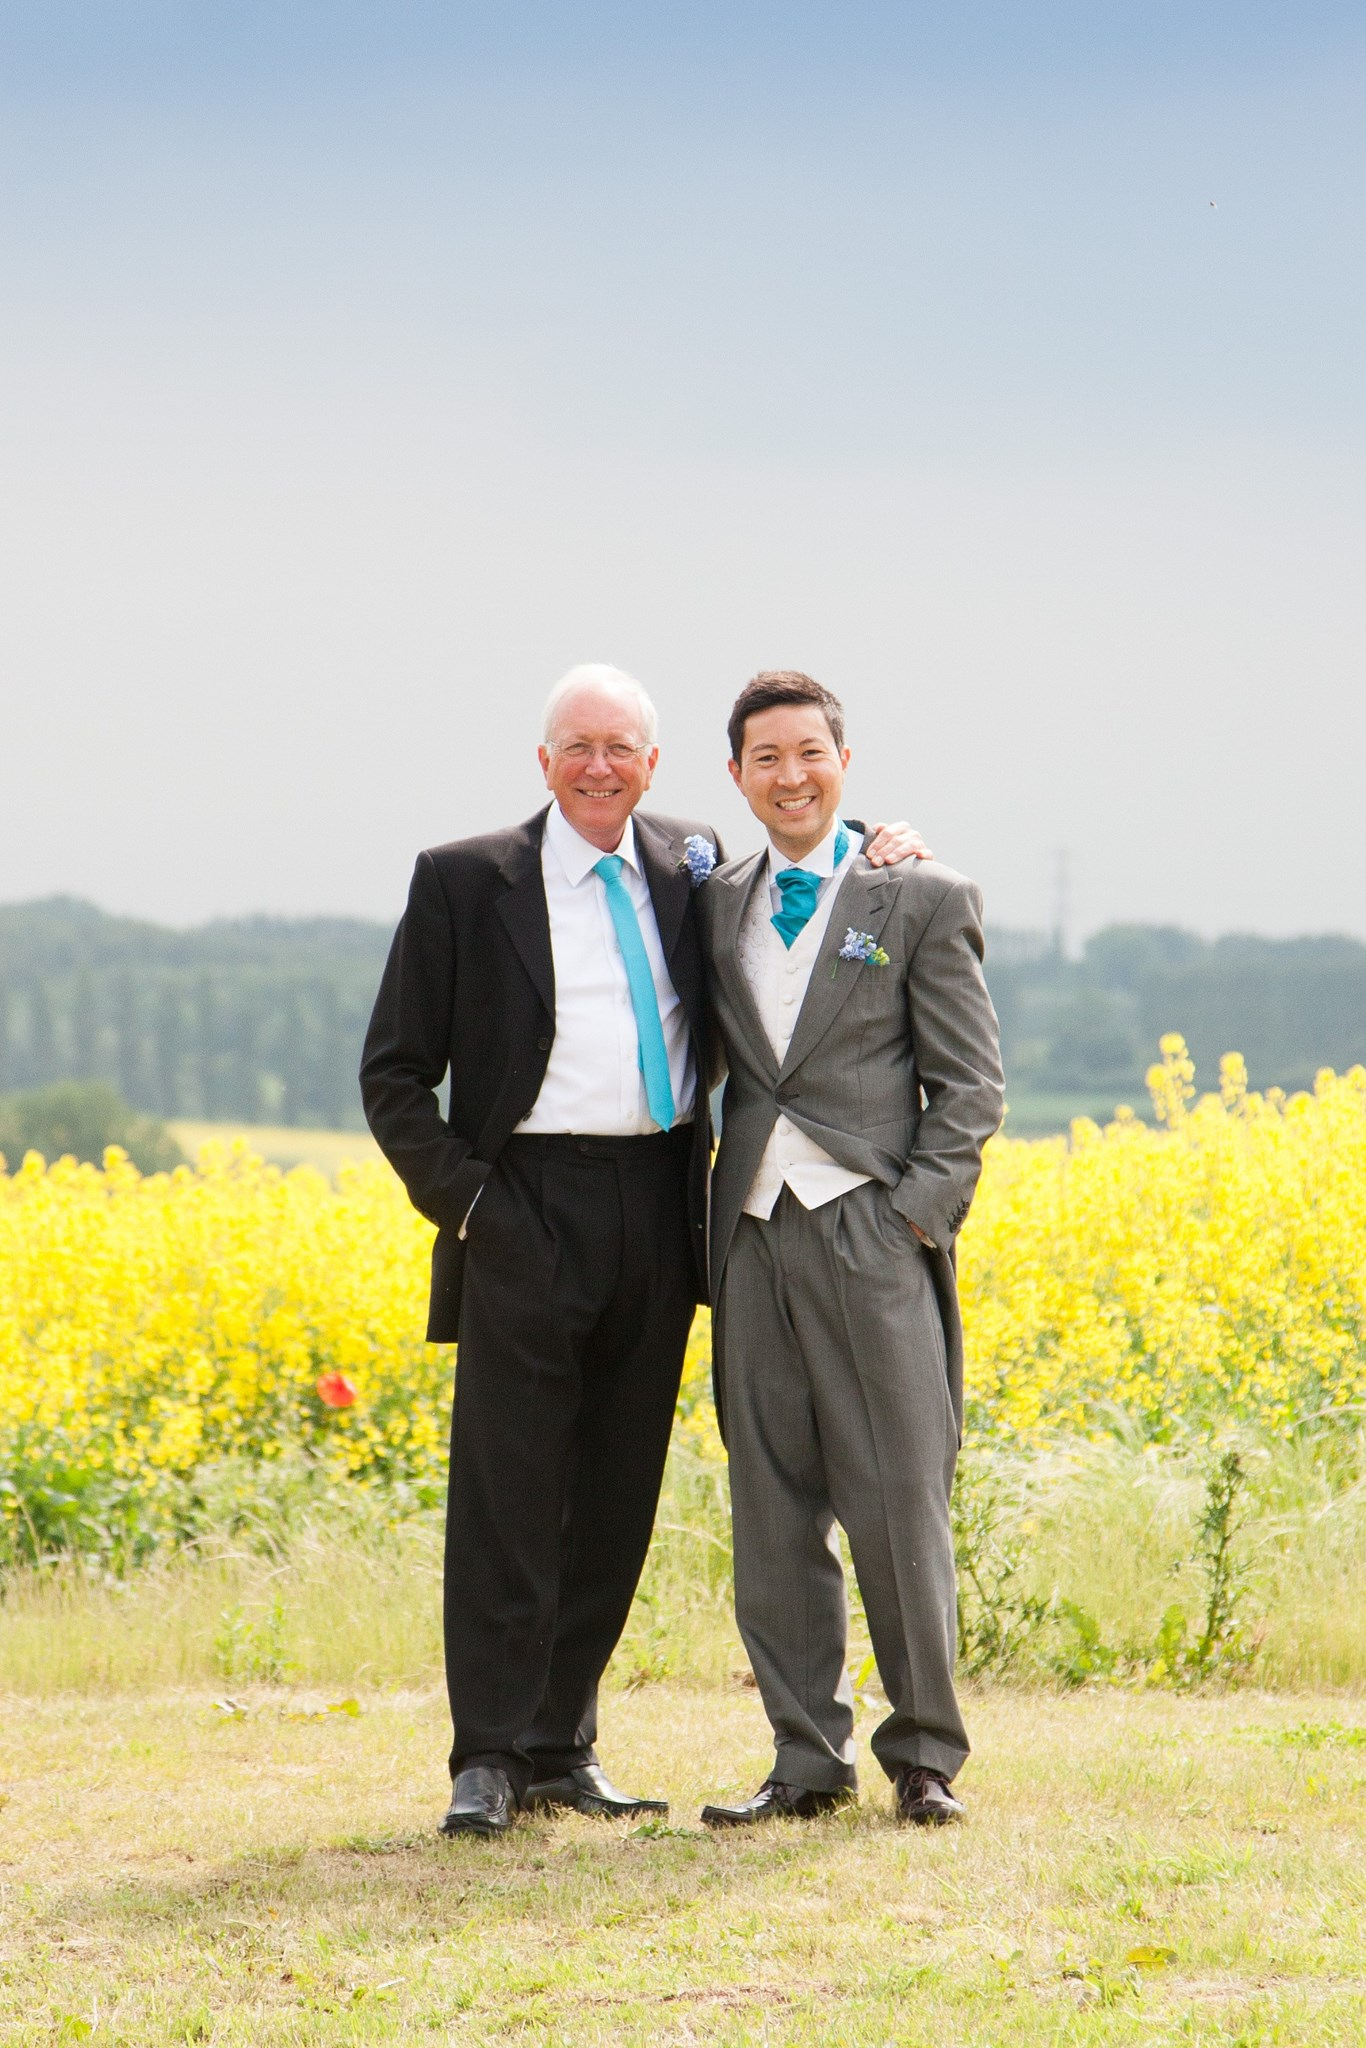 Me and Dad on my wedding day June 2013